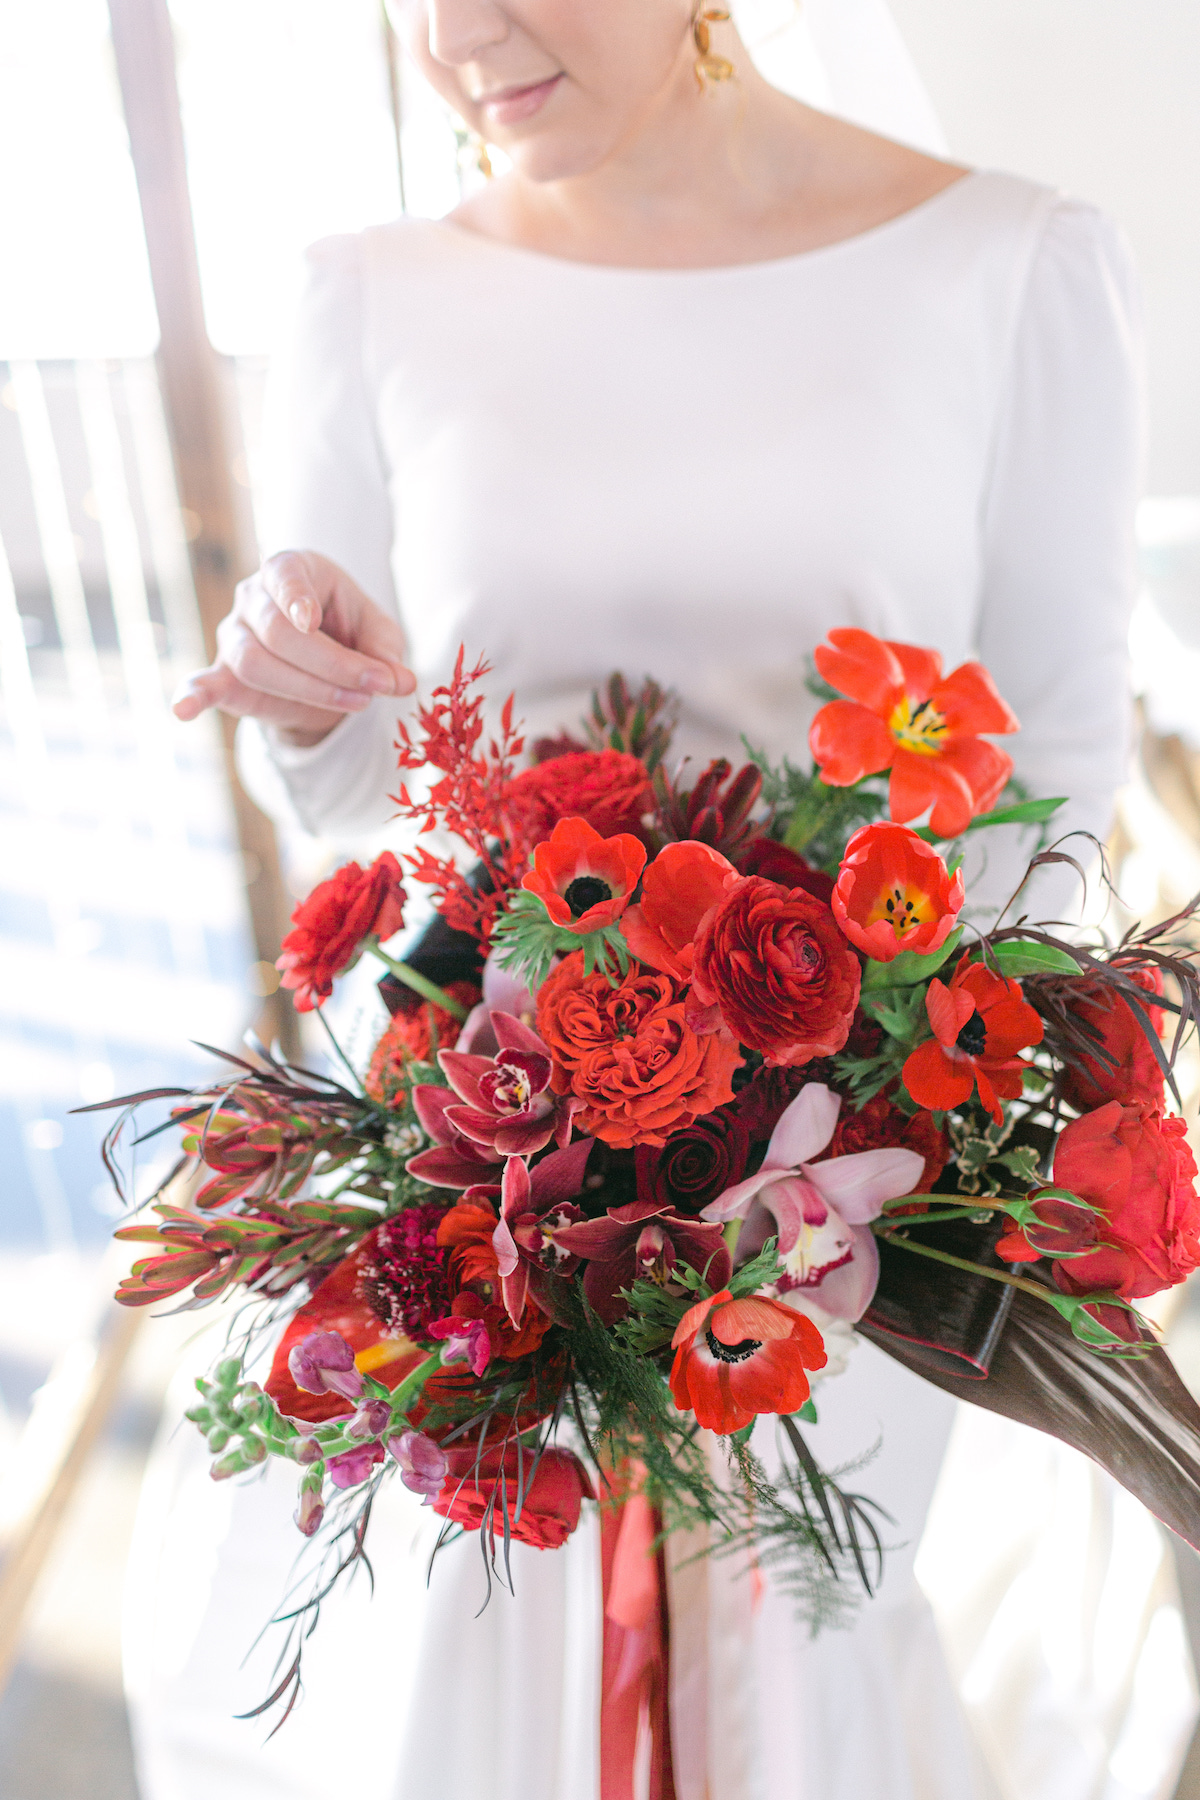 Winter Wedding bouquet with red flowers - 5th Fine Art Photography